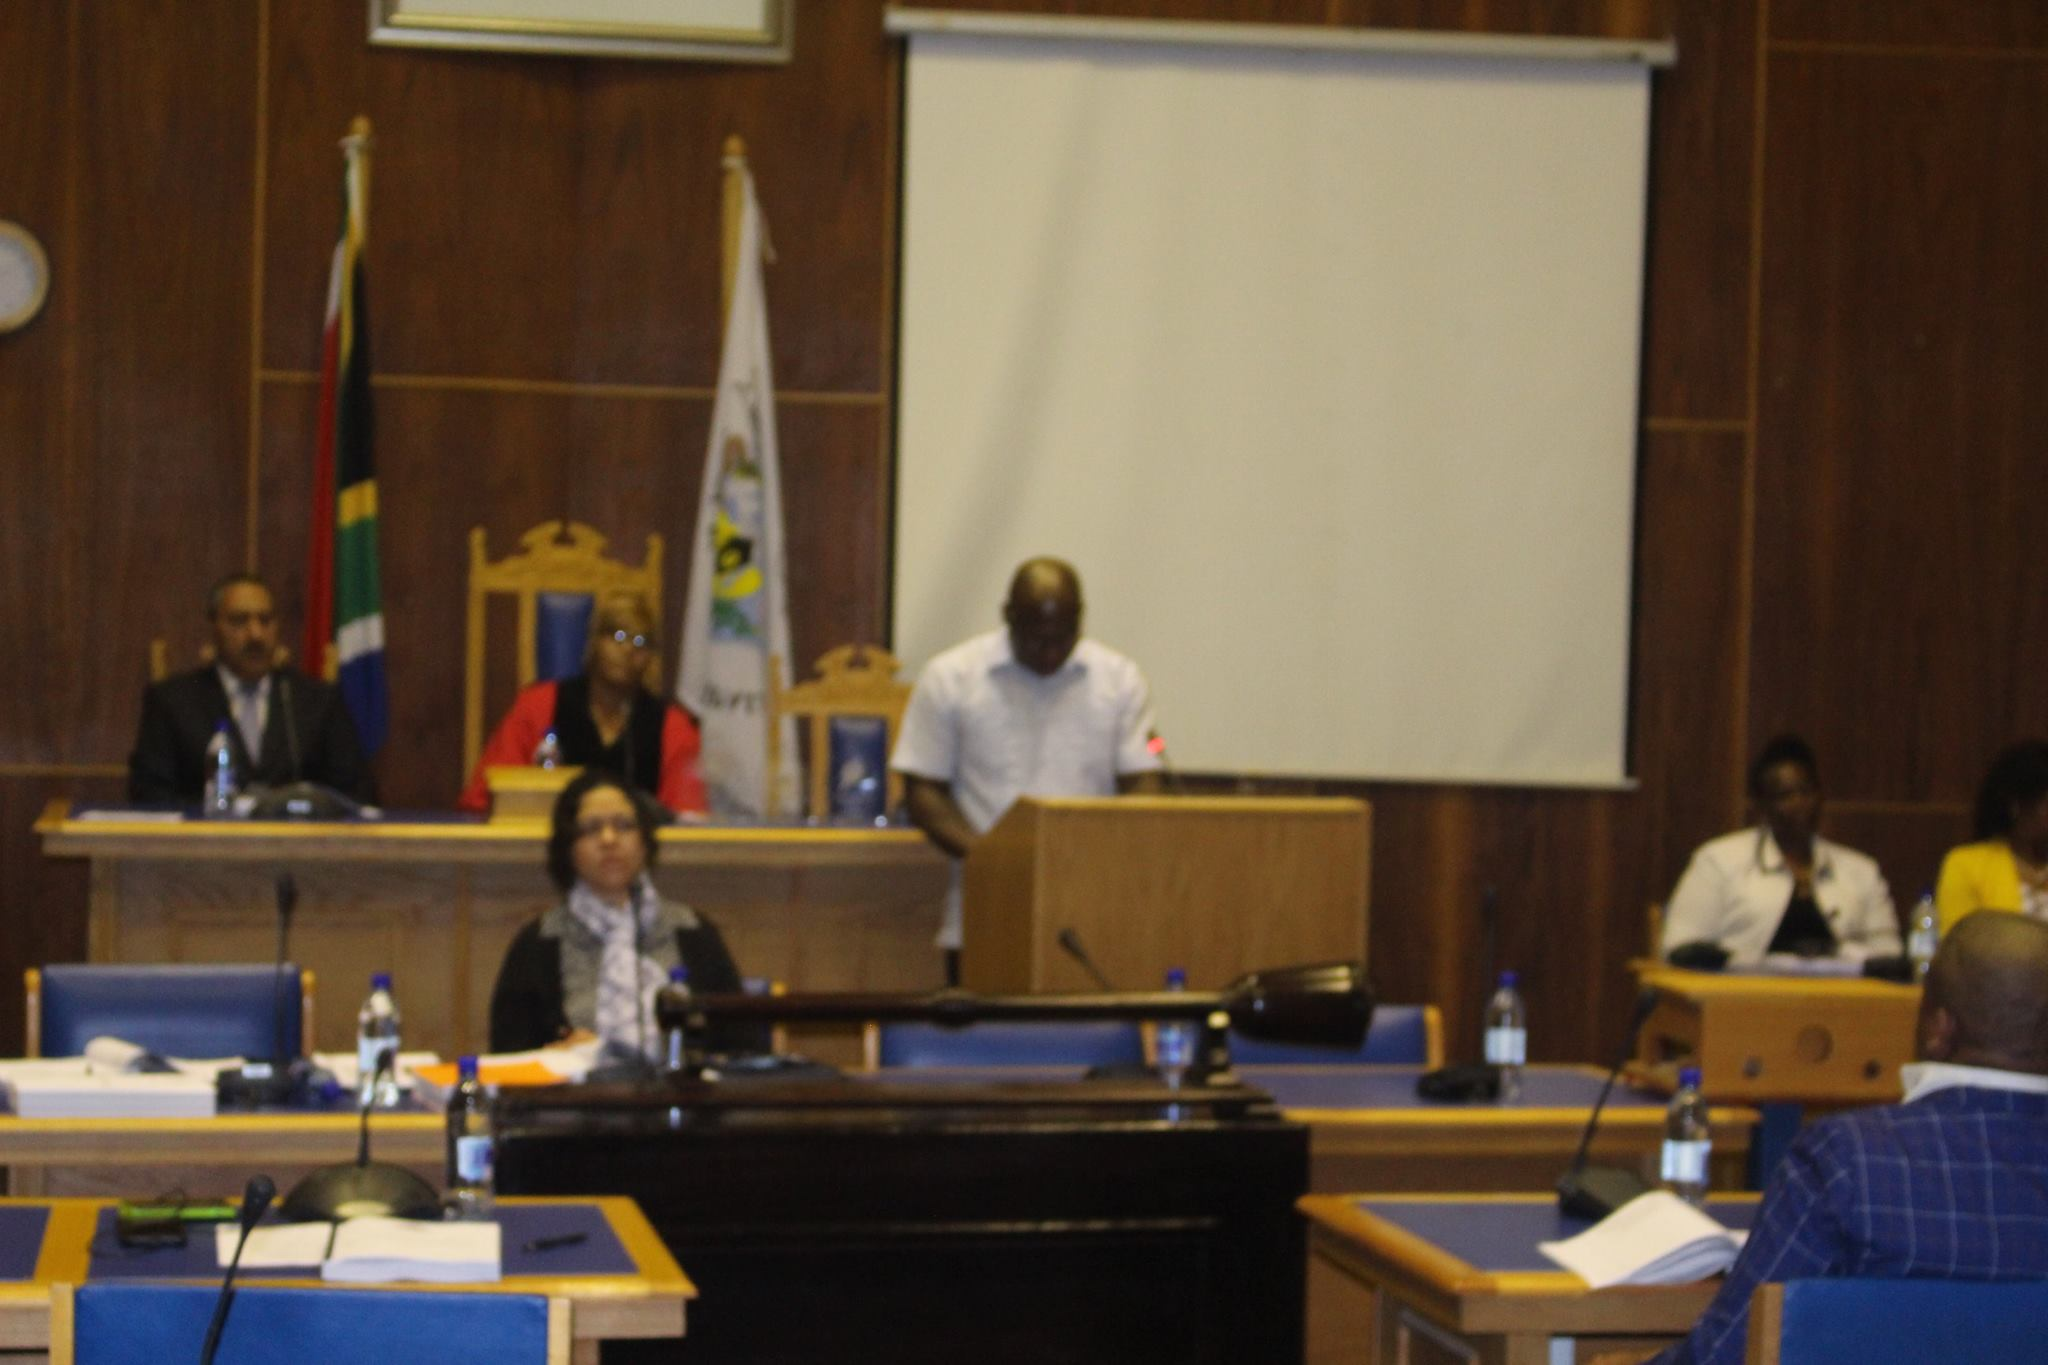 PEECH OF THE EXECUTIVE MAYOR ON THE OCASSION OF THE ORDINARY COUNCIL MEETING ON 4 OCTOBER 2017